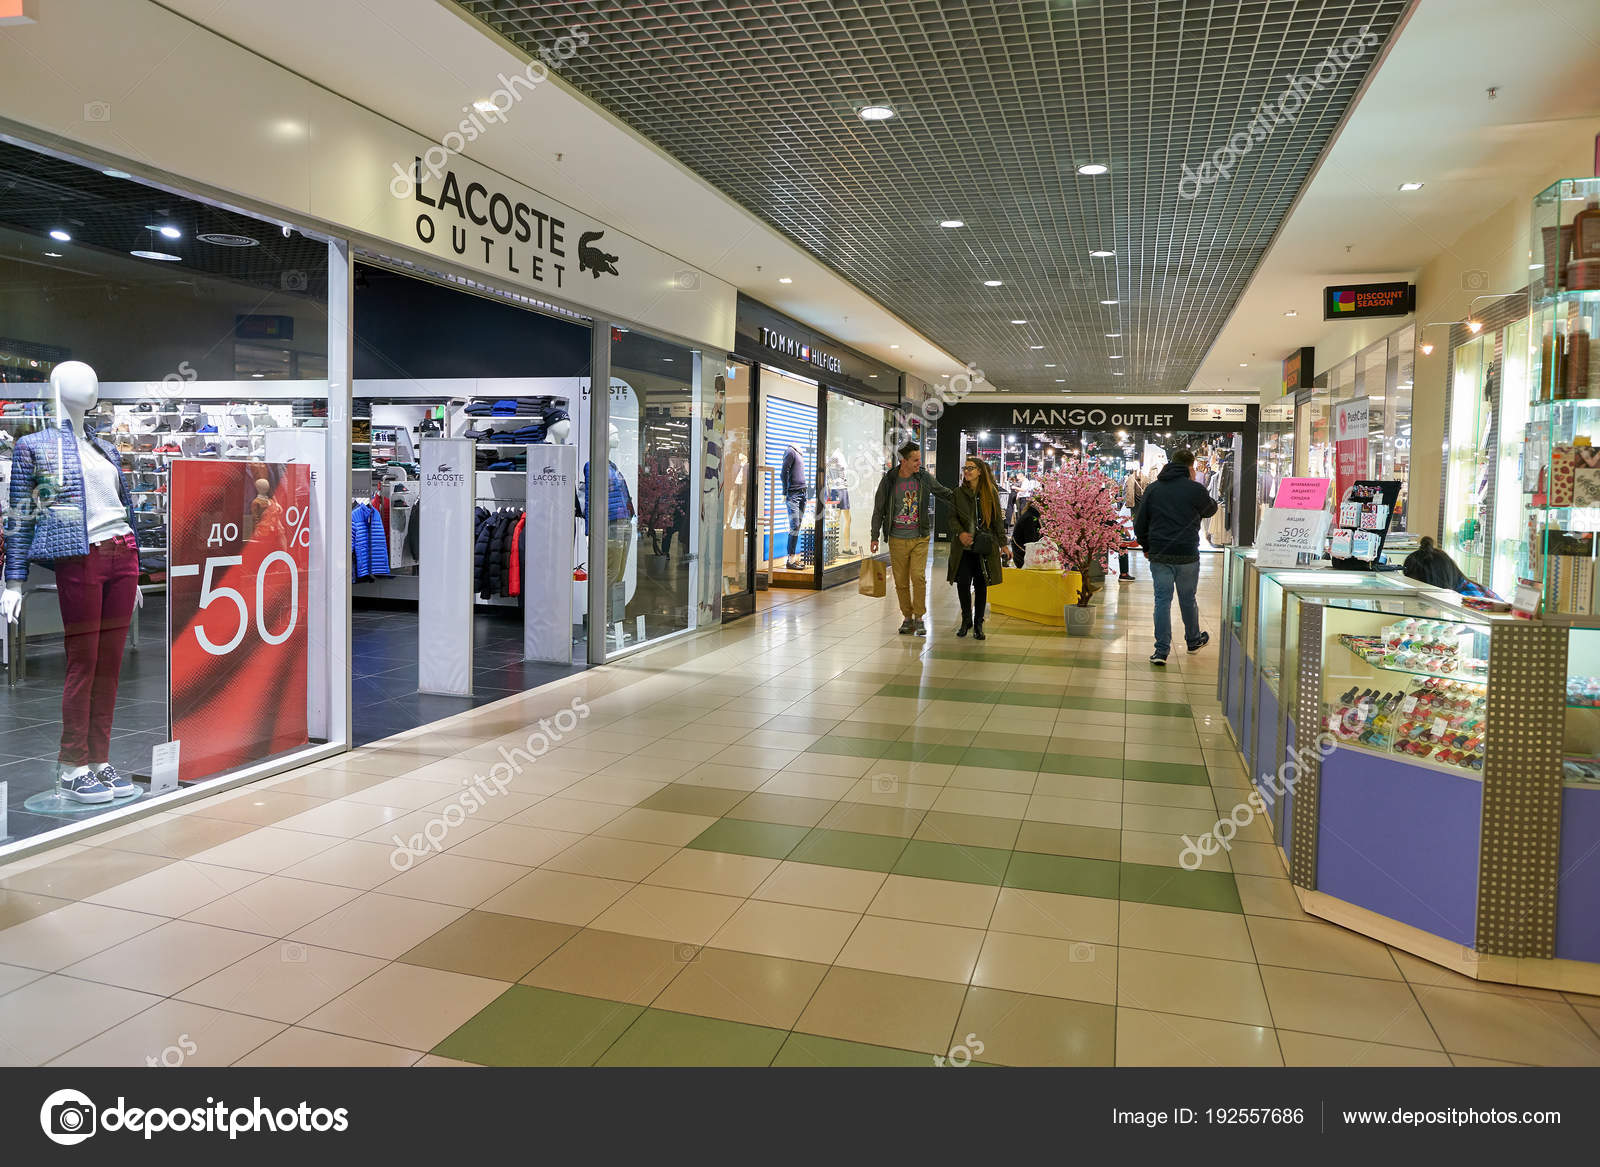 54b2a65c3 Russia Saint Petersburg Circa October 2017 Lacoste Outlet Shopping Center —  Stock Photo